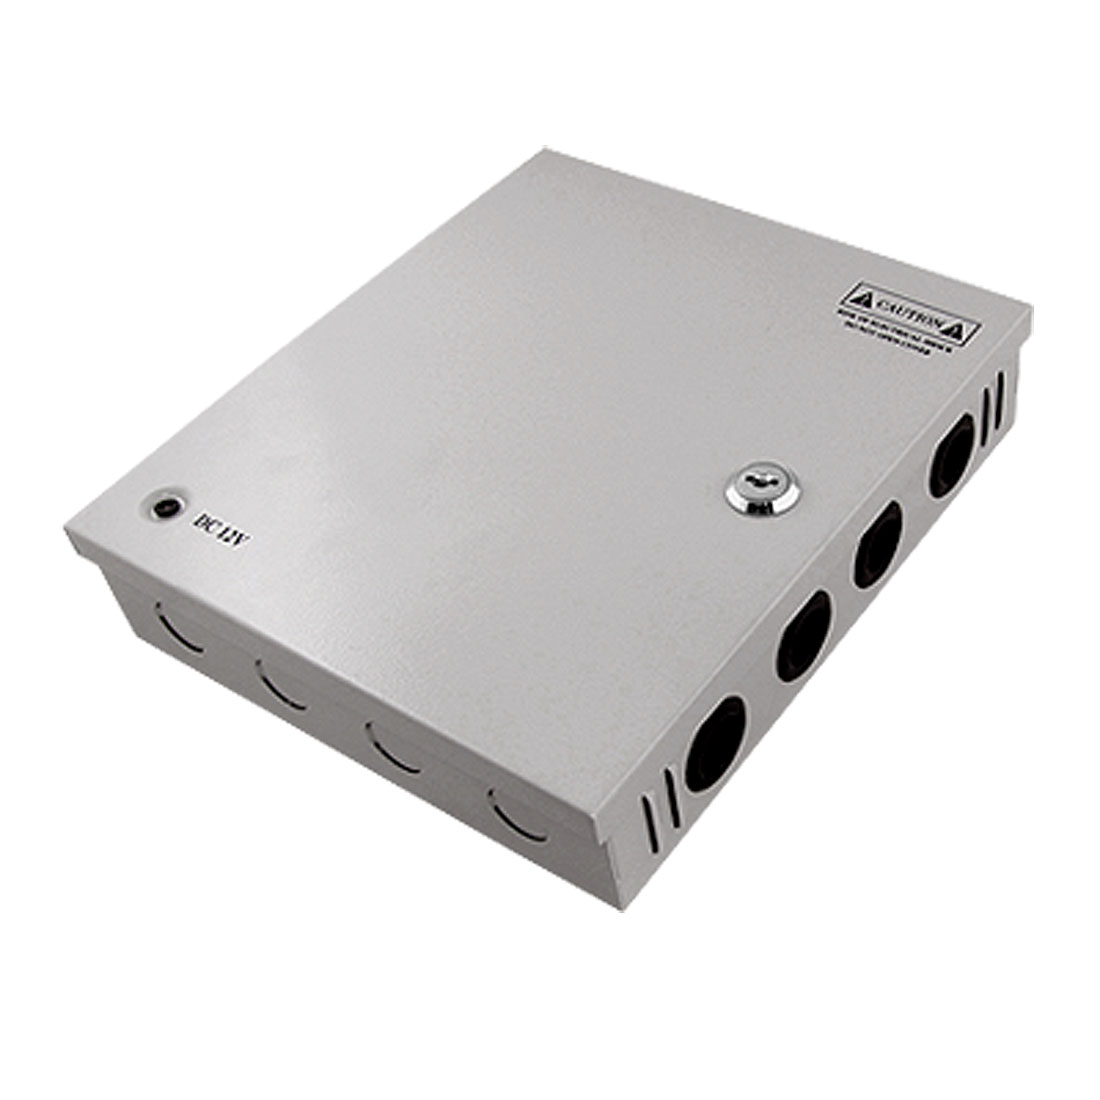 12V 10A 9 Channel CCTV Camera Distributed Power Supply Box